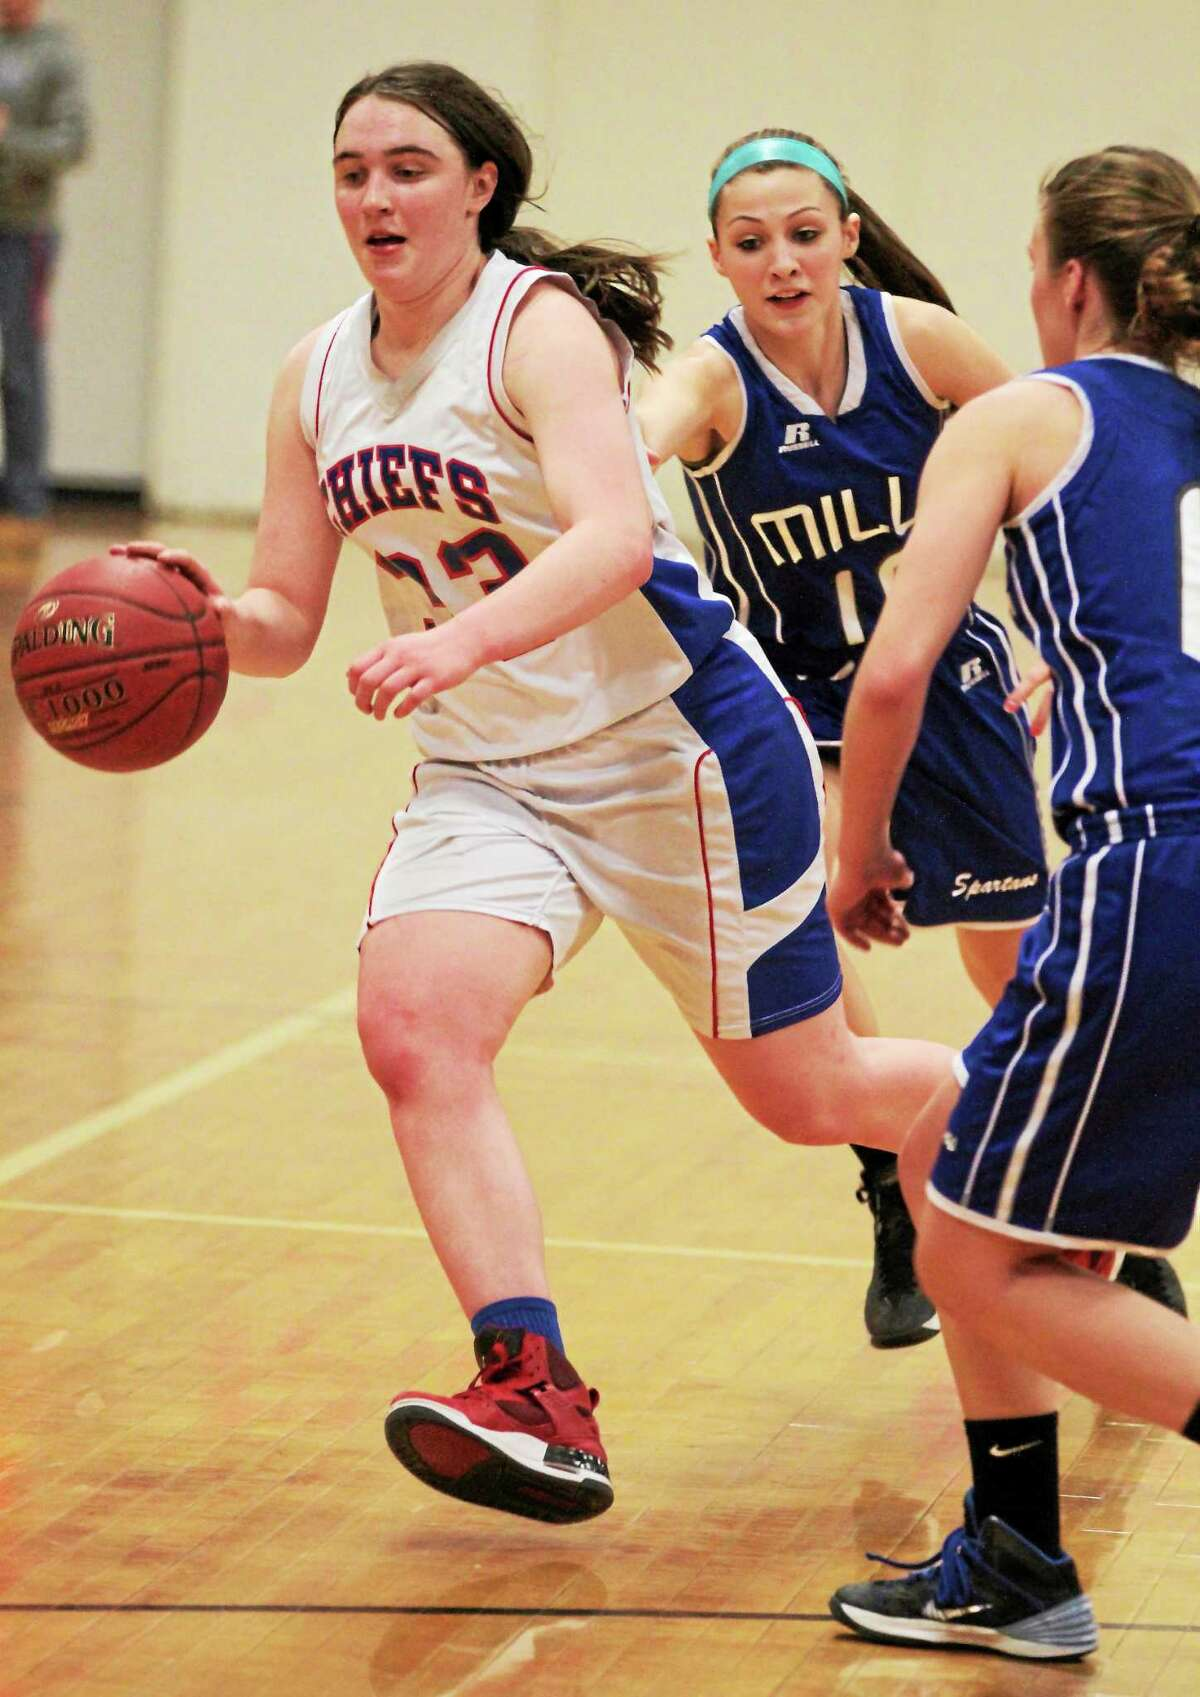 Jessica Fengler of Nonnewaug dribbles the ball in her team's win over Lewis Mills.